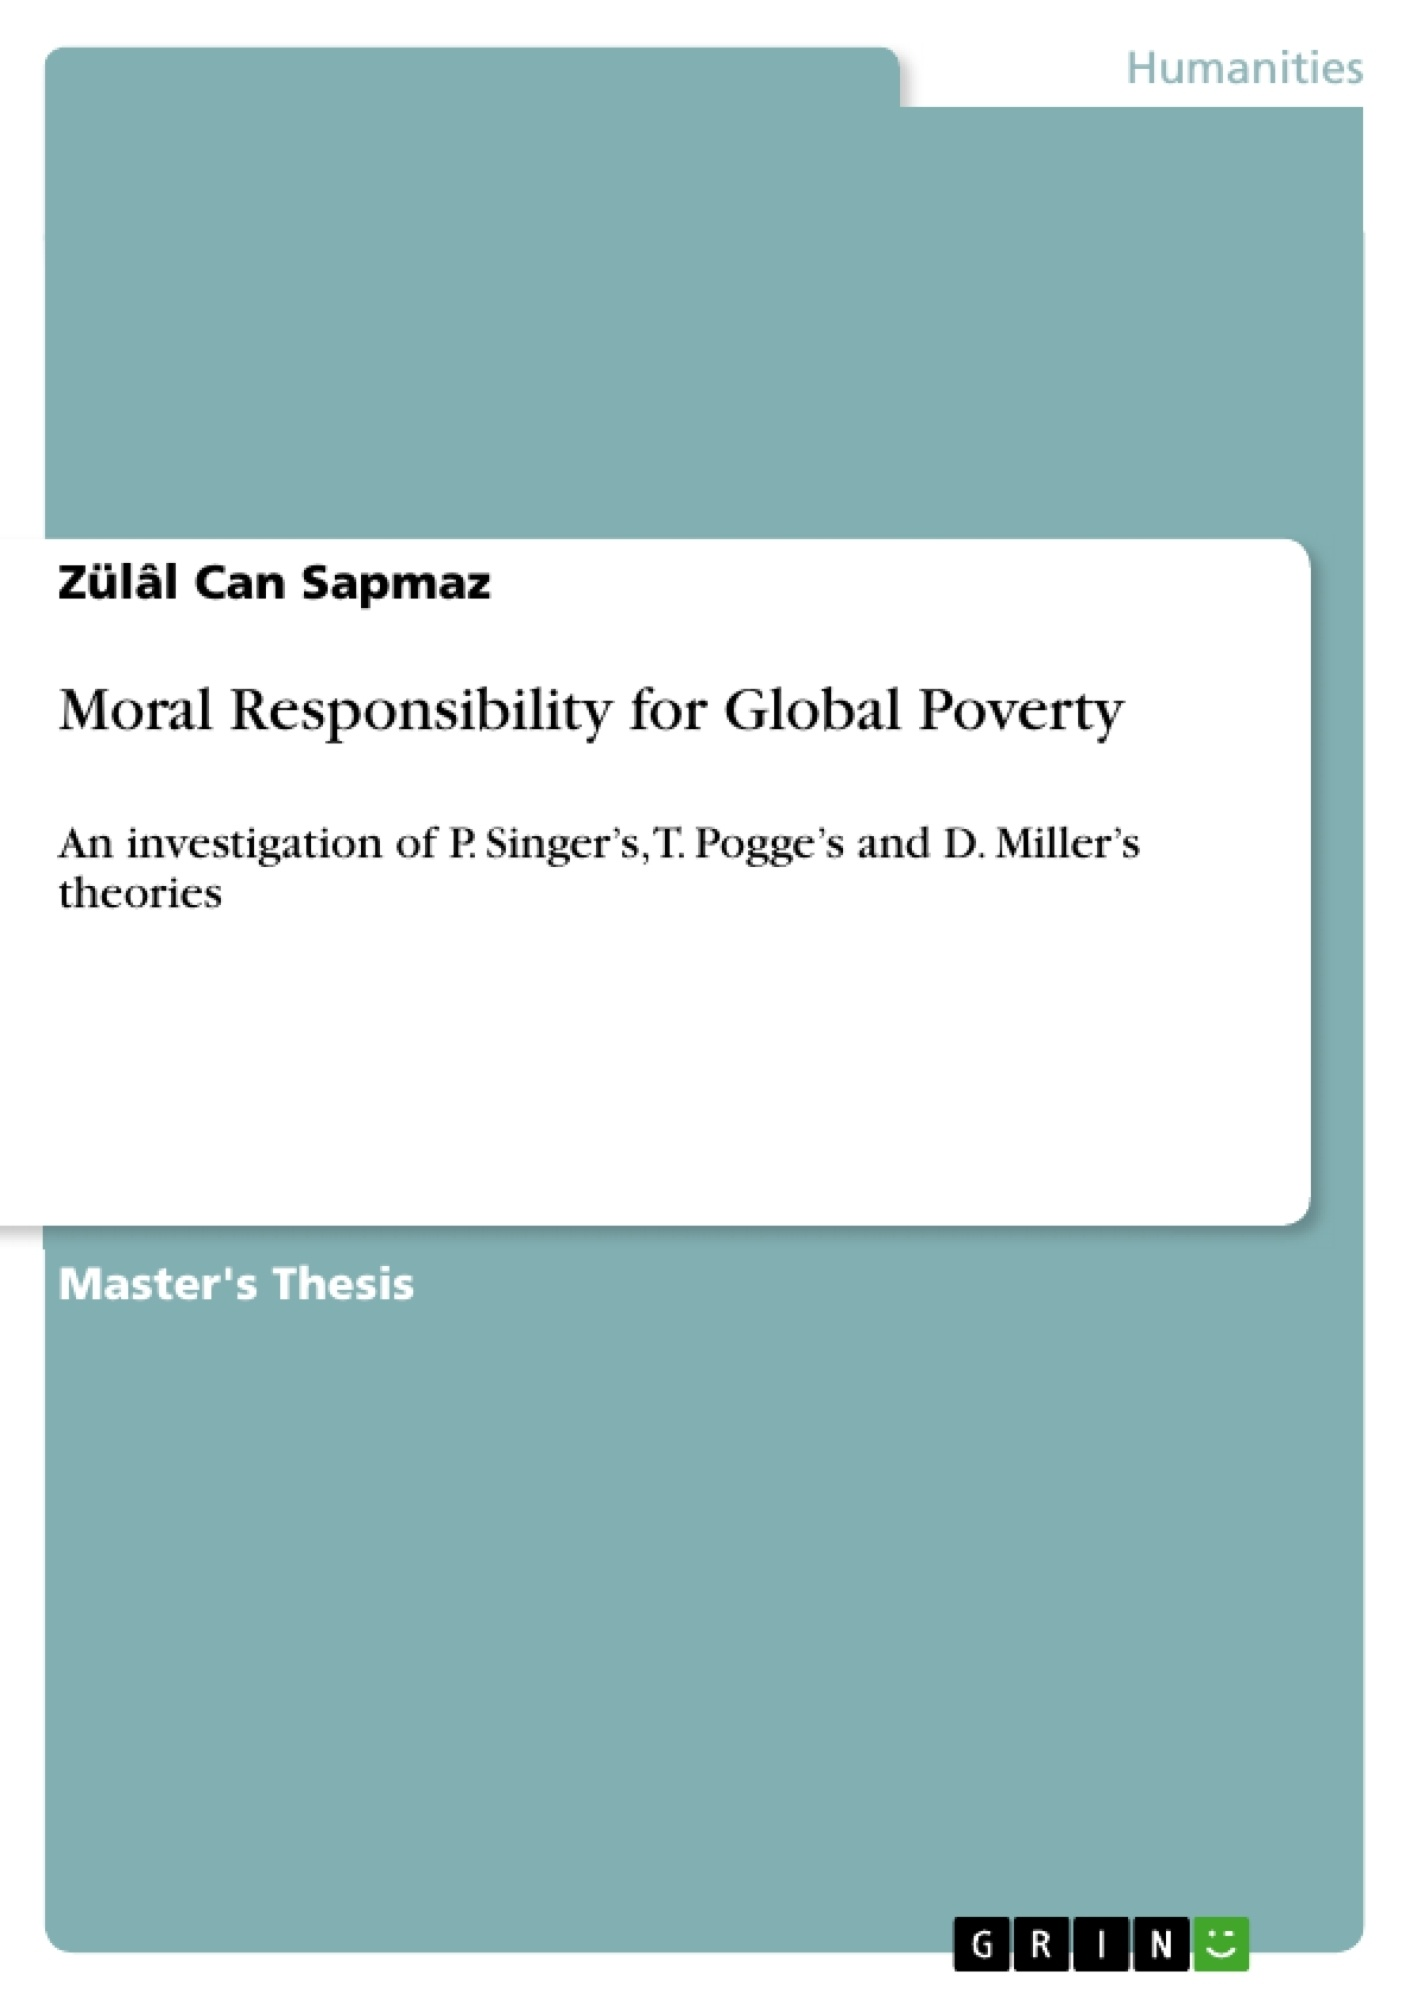 Title: Moral Responsibility for Global Poverty